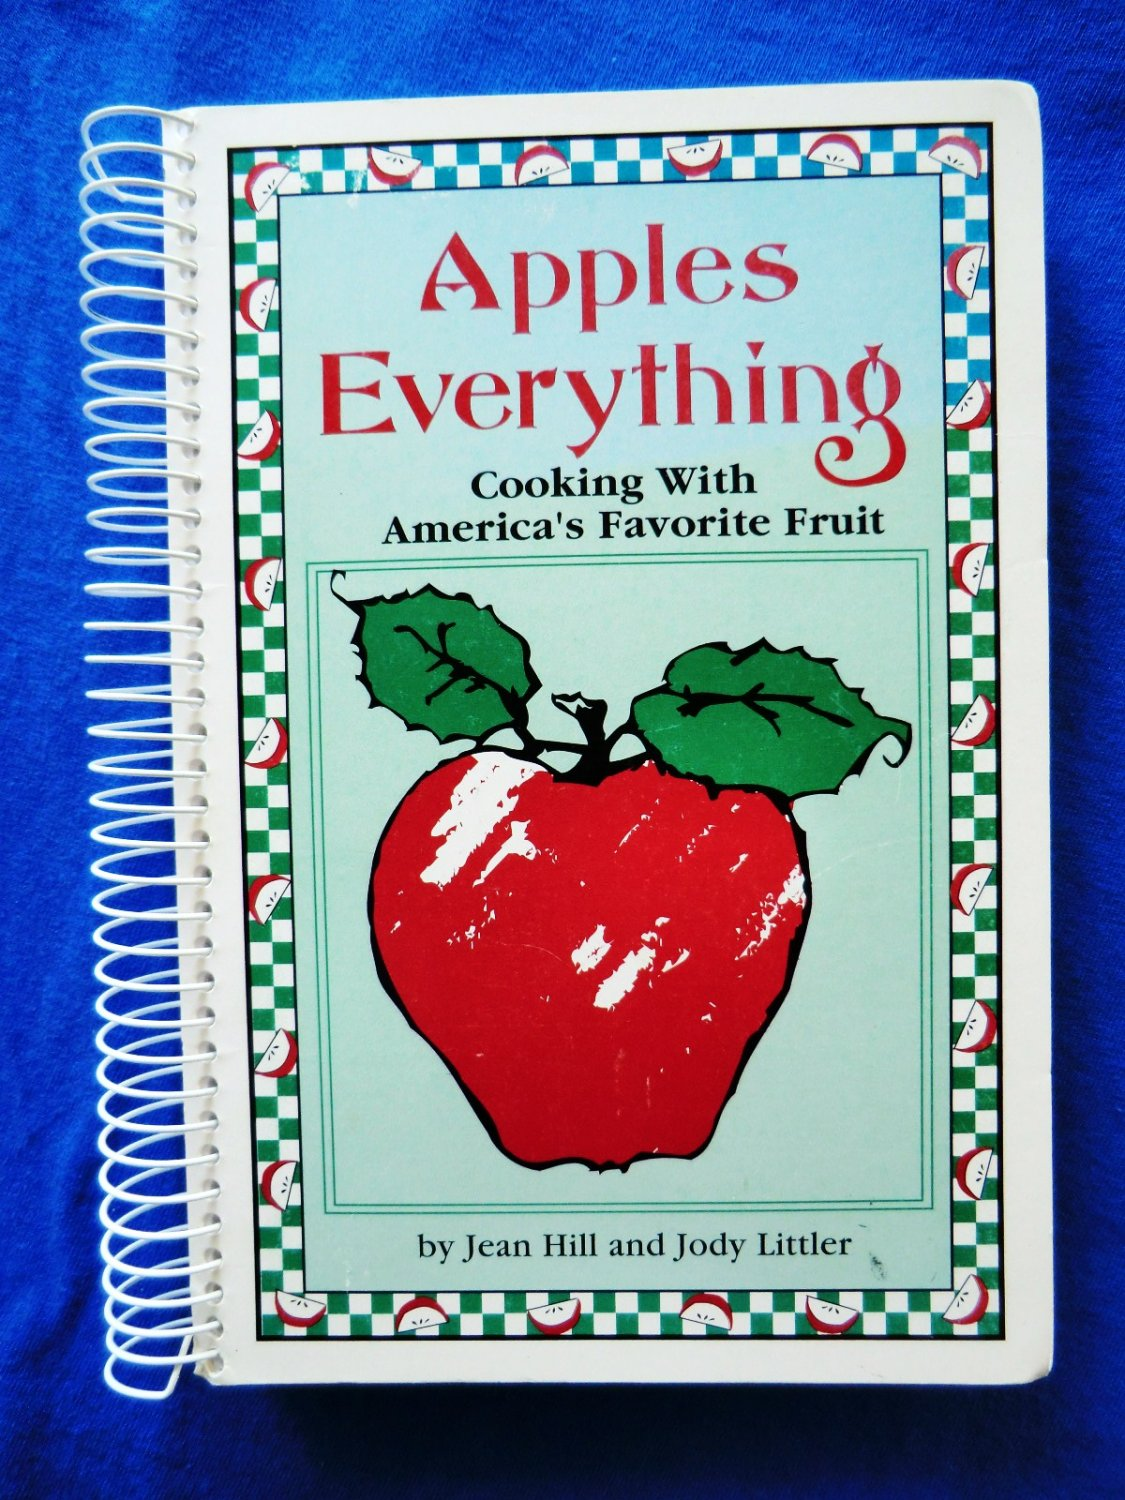 Apples Everything Cooking With America's Favorite Fruit Cookbook 1st Printing Apple